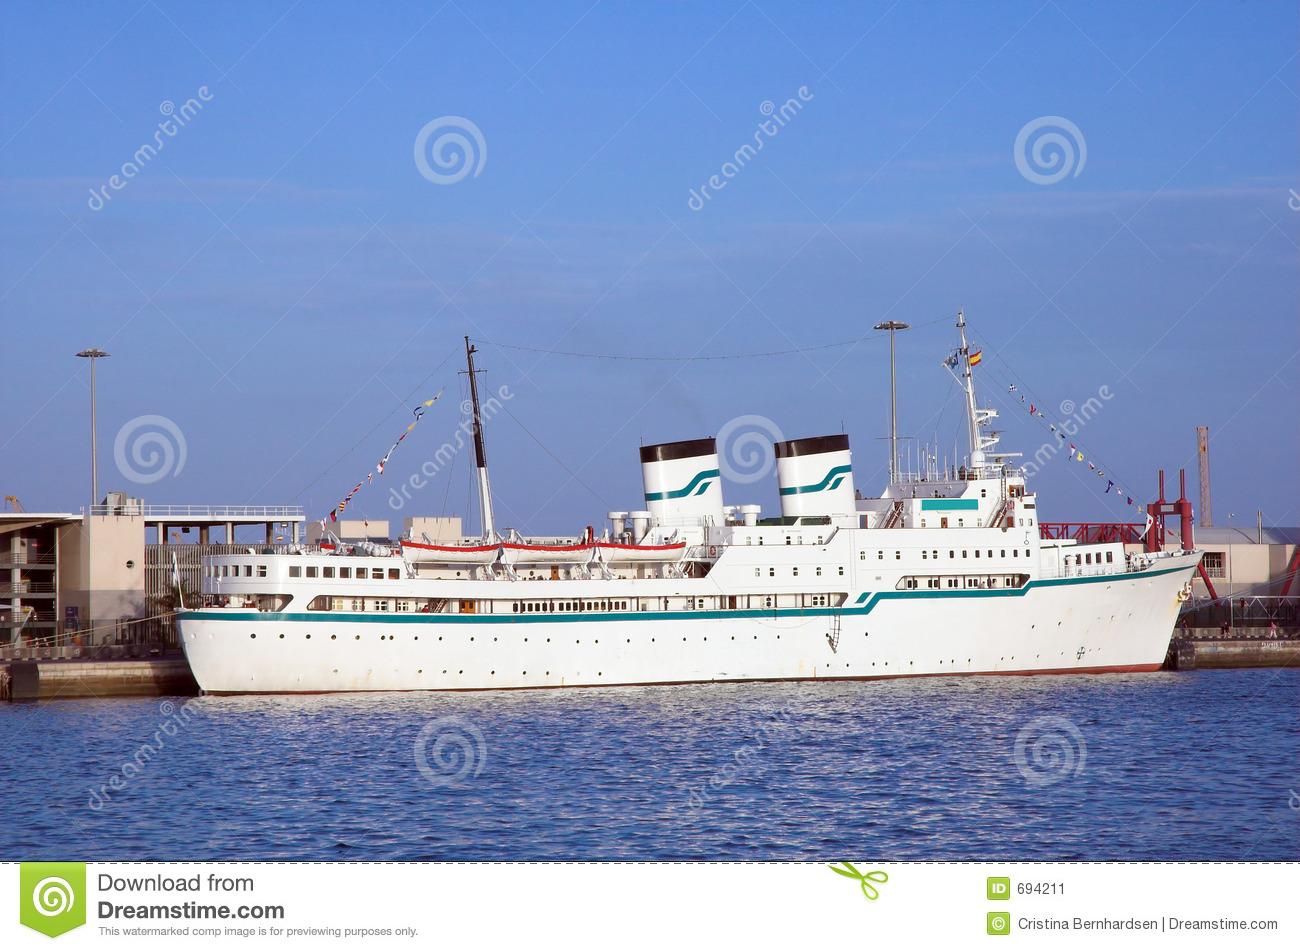 Old and small cruise ship stock image image 694211 for Small cruise ship lines